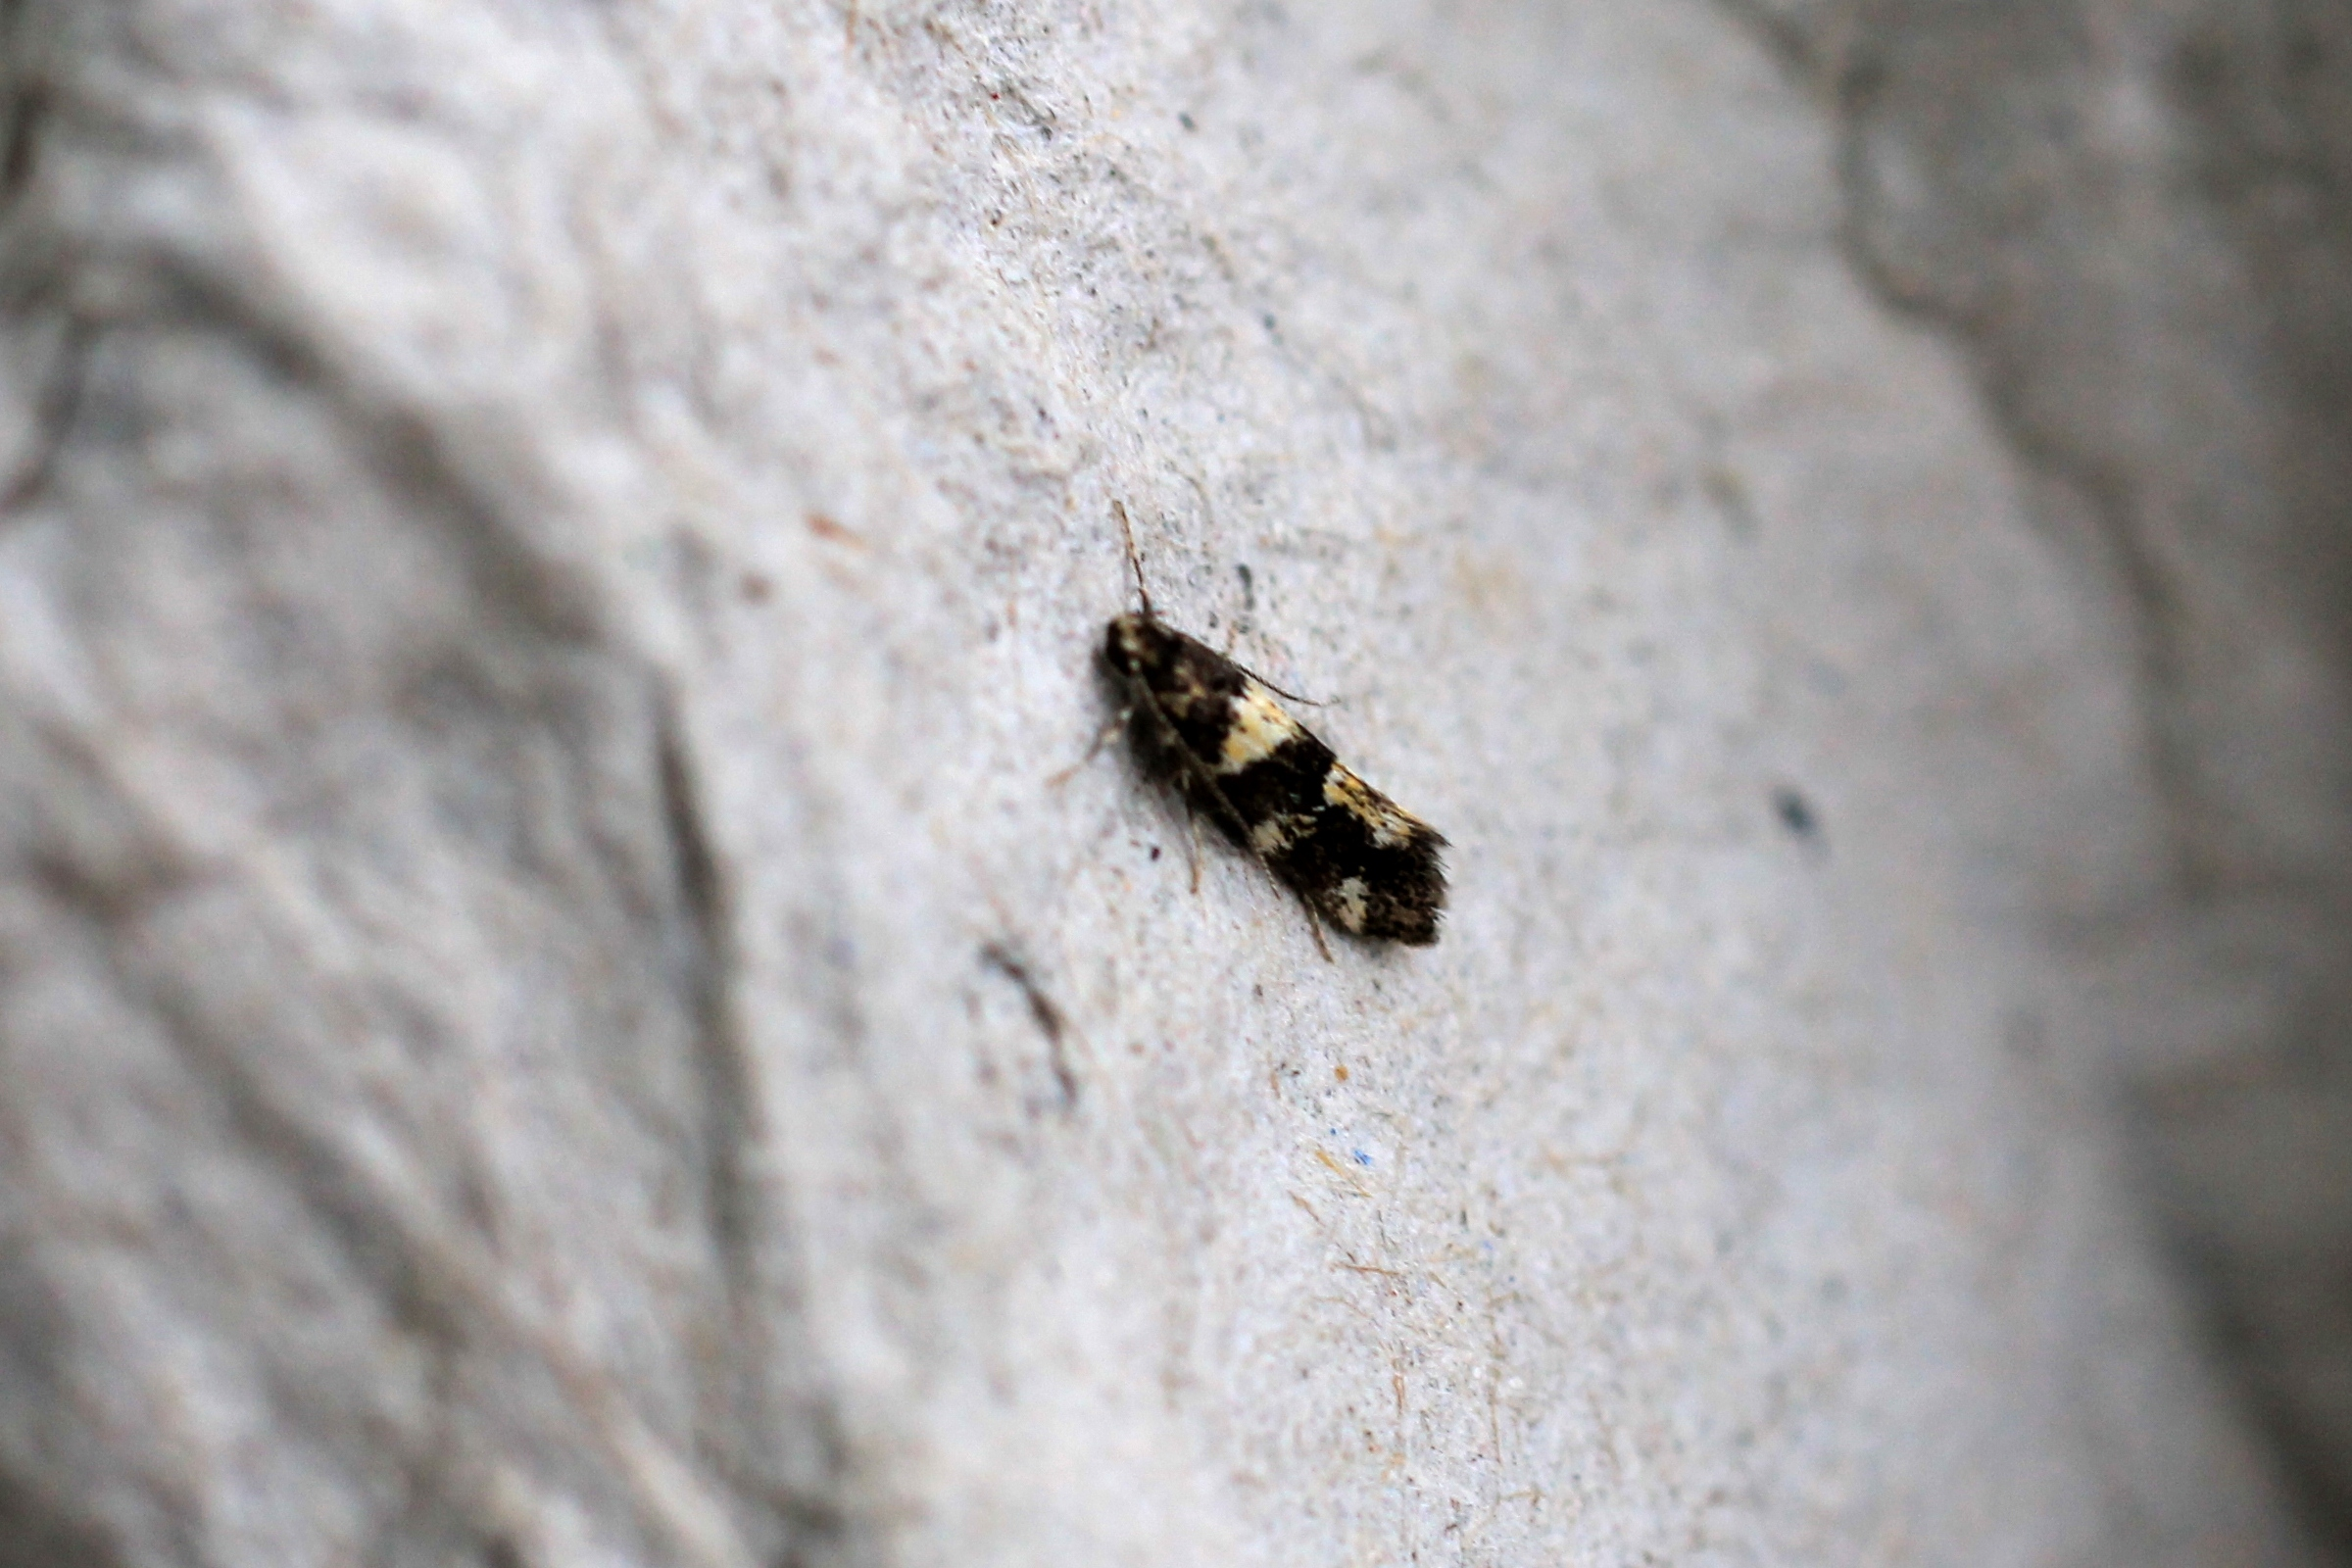 ENDANGERED: The extremely rare White-spotted Black micro moth, discovered in York city centre